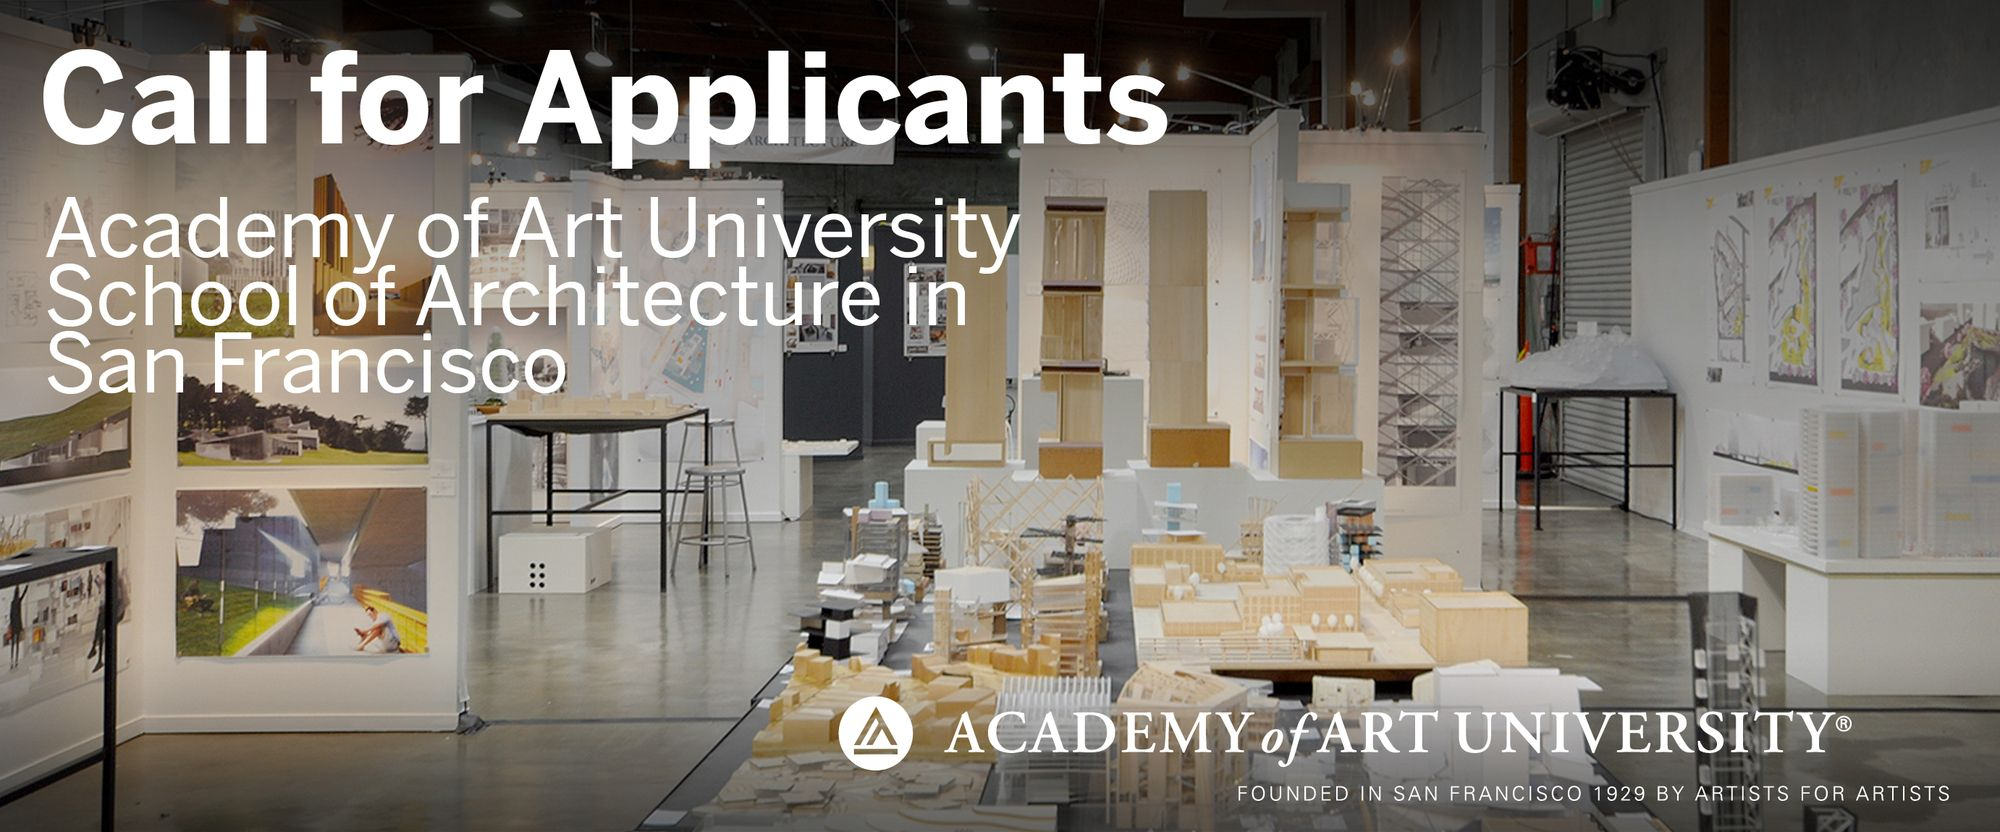 Call For Applicants School Of Architecture At Academy Of Art University In San Francisco With Images School Architecture Architecture School